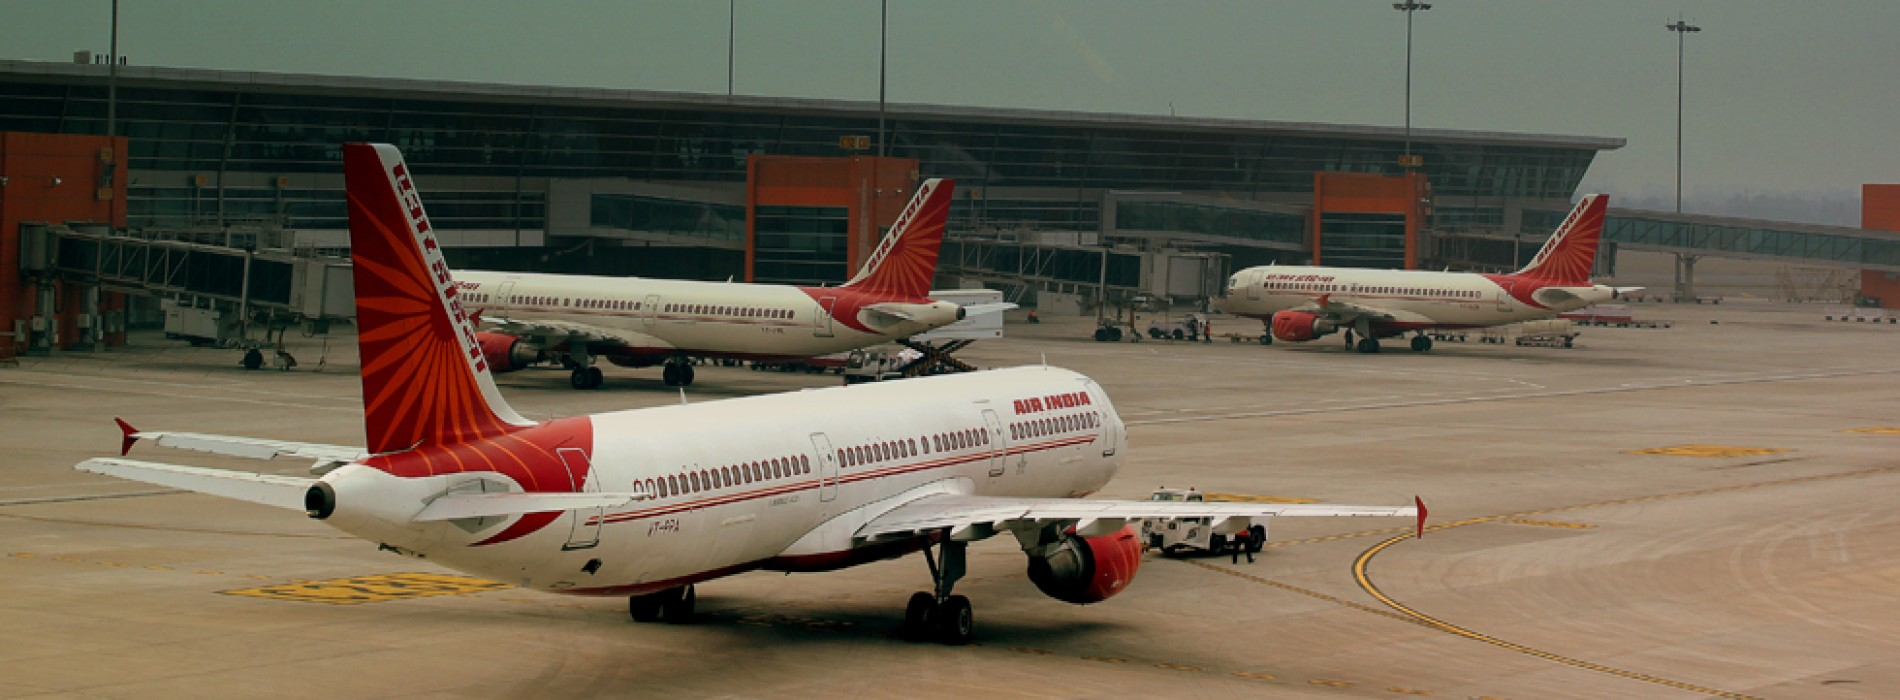 Air India stake sale: Government mulls absorbing employees in PSUs